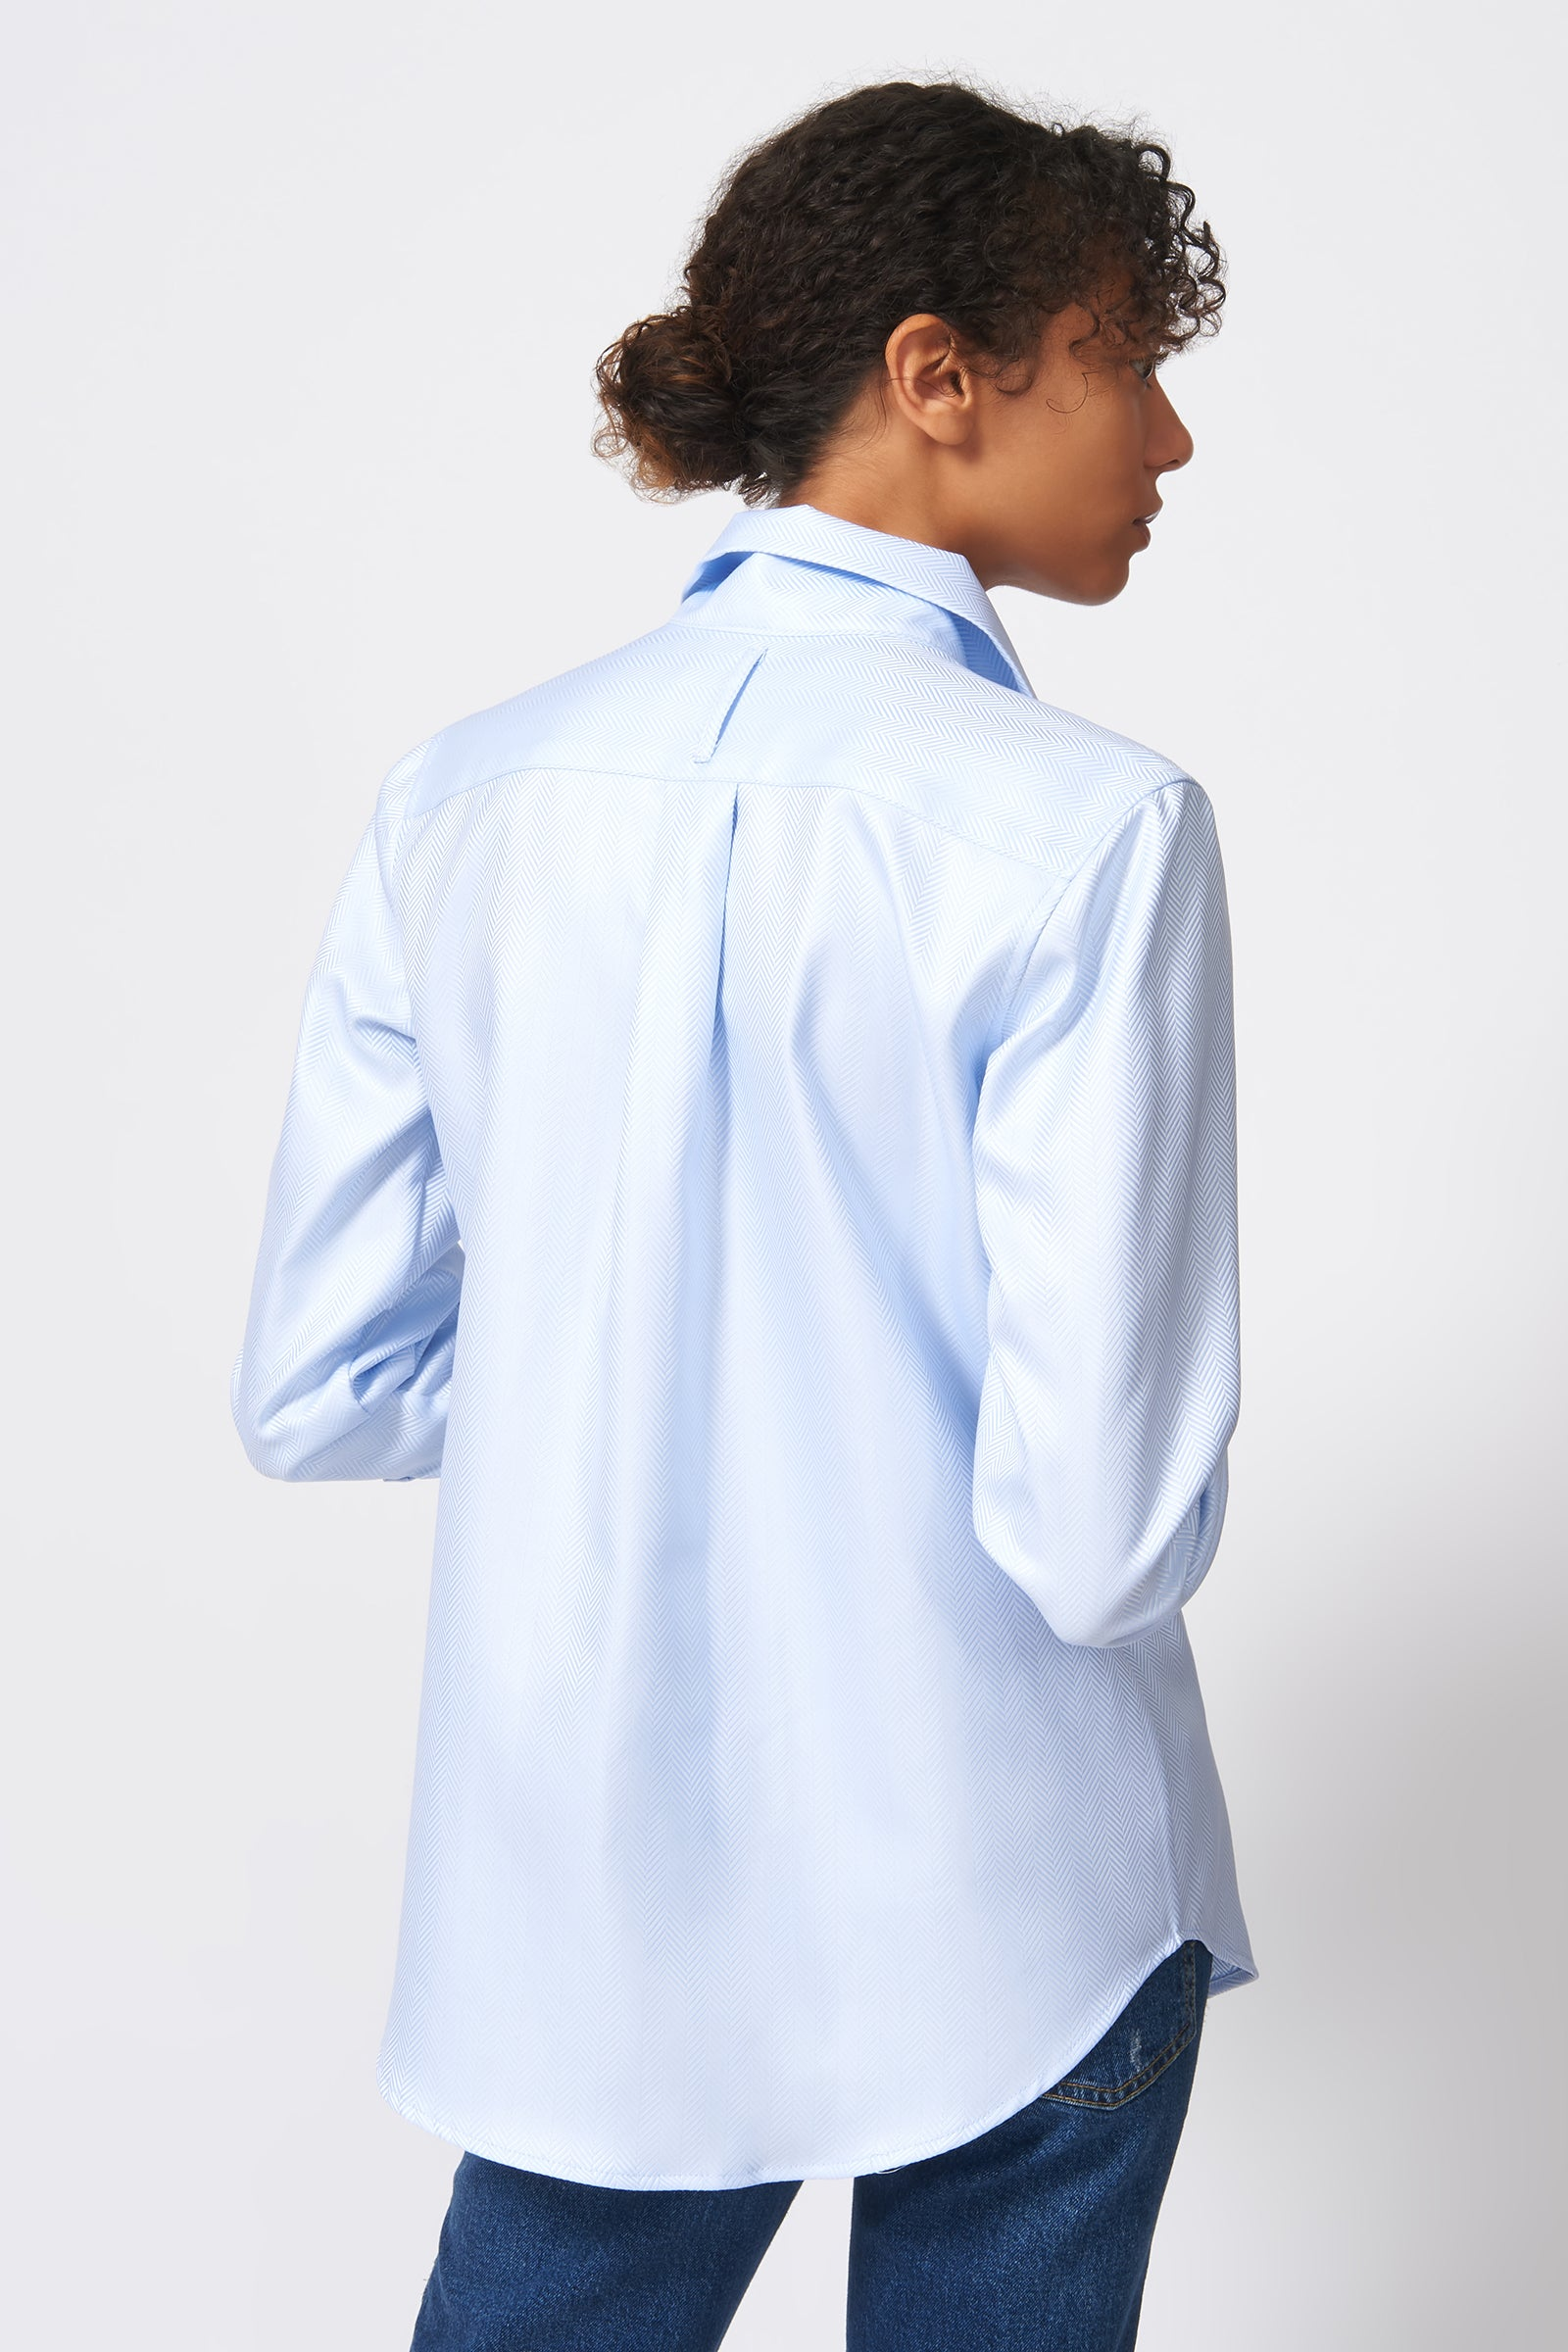 Kal Rieman Ginna Box Pleat Shirt in French Blue Herringbone on Model Front View